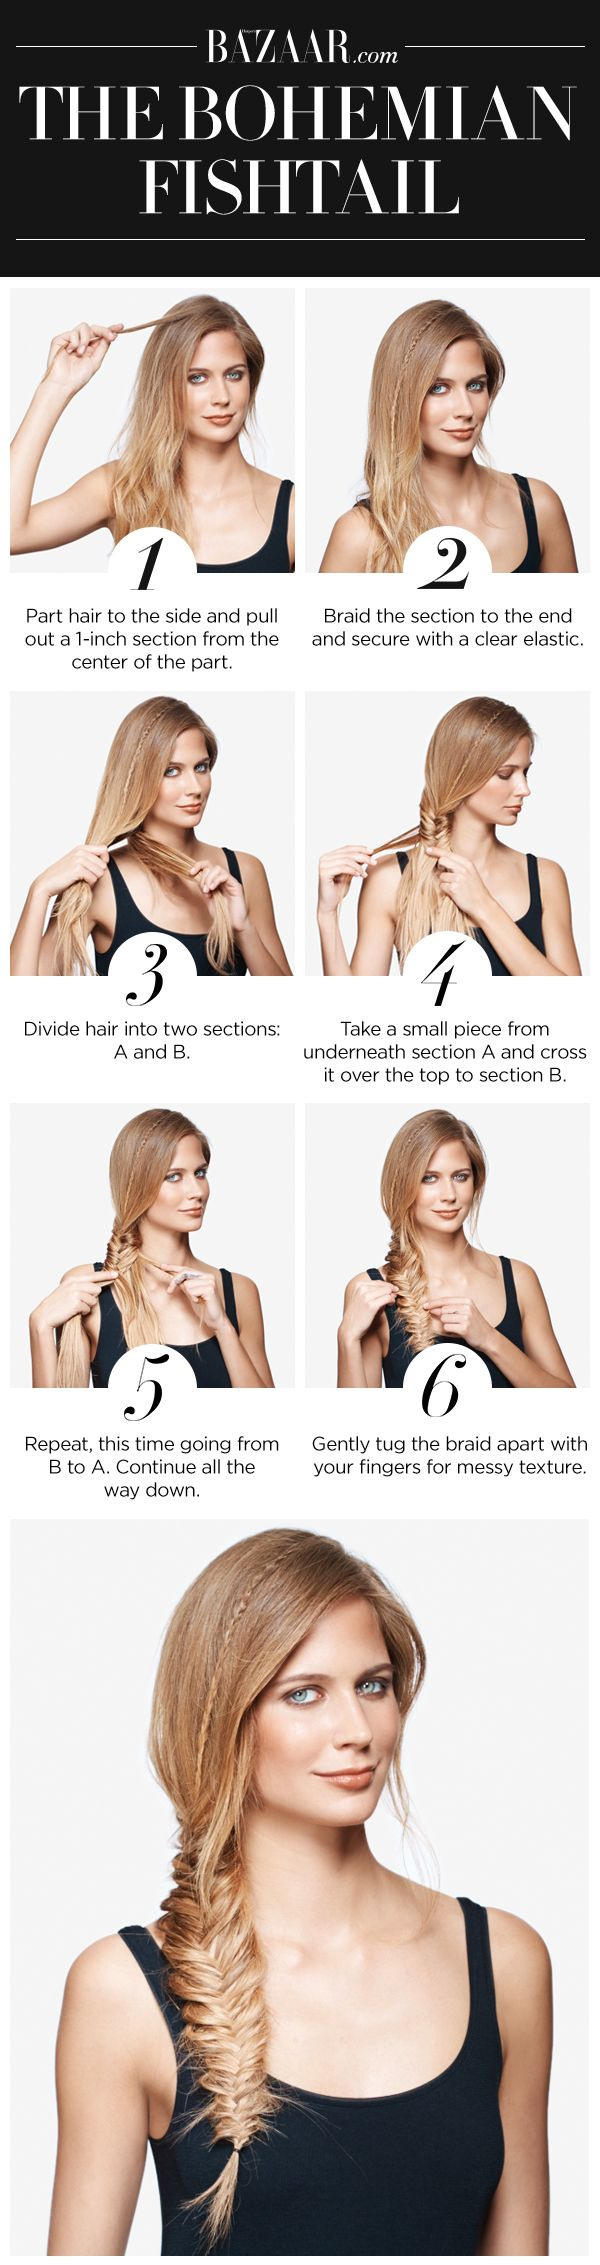 10-boho-hair-tutorial-for-the-season4